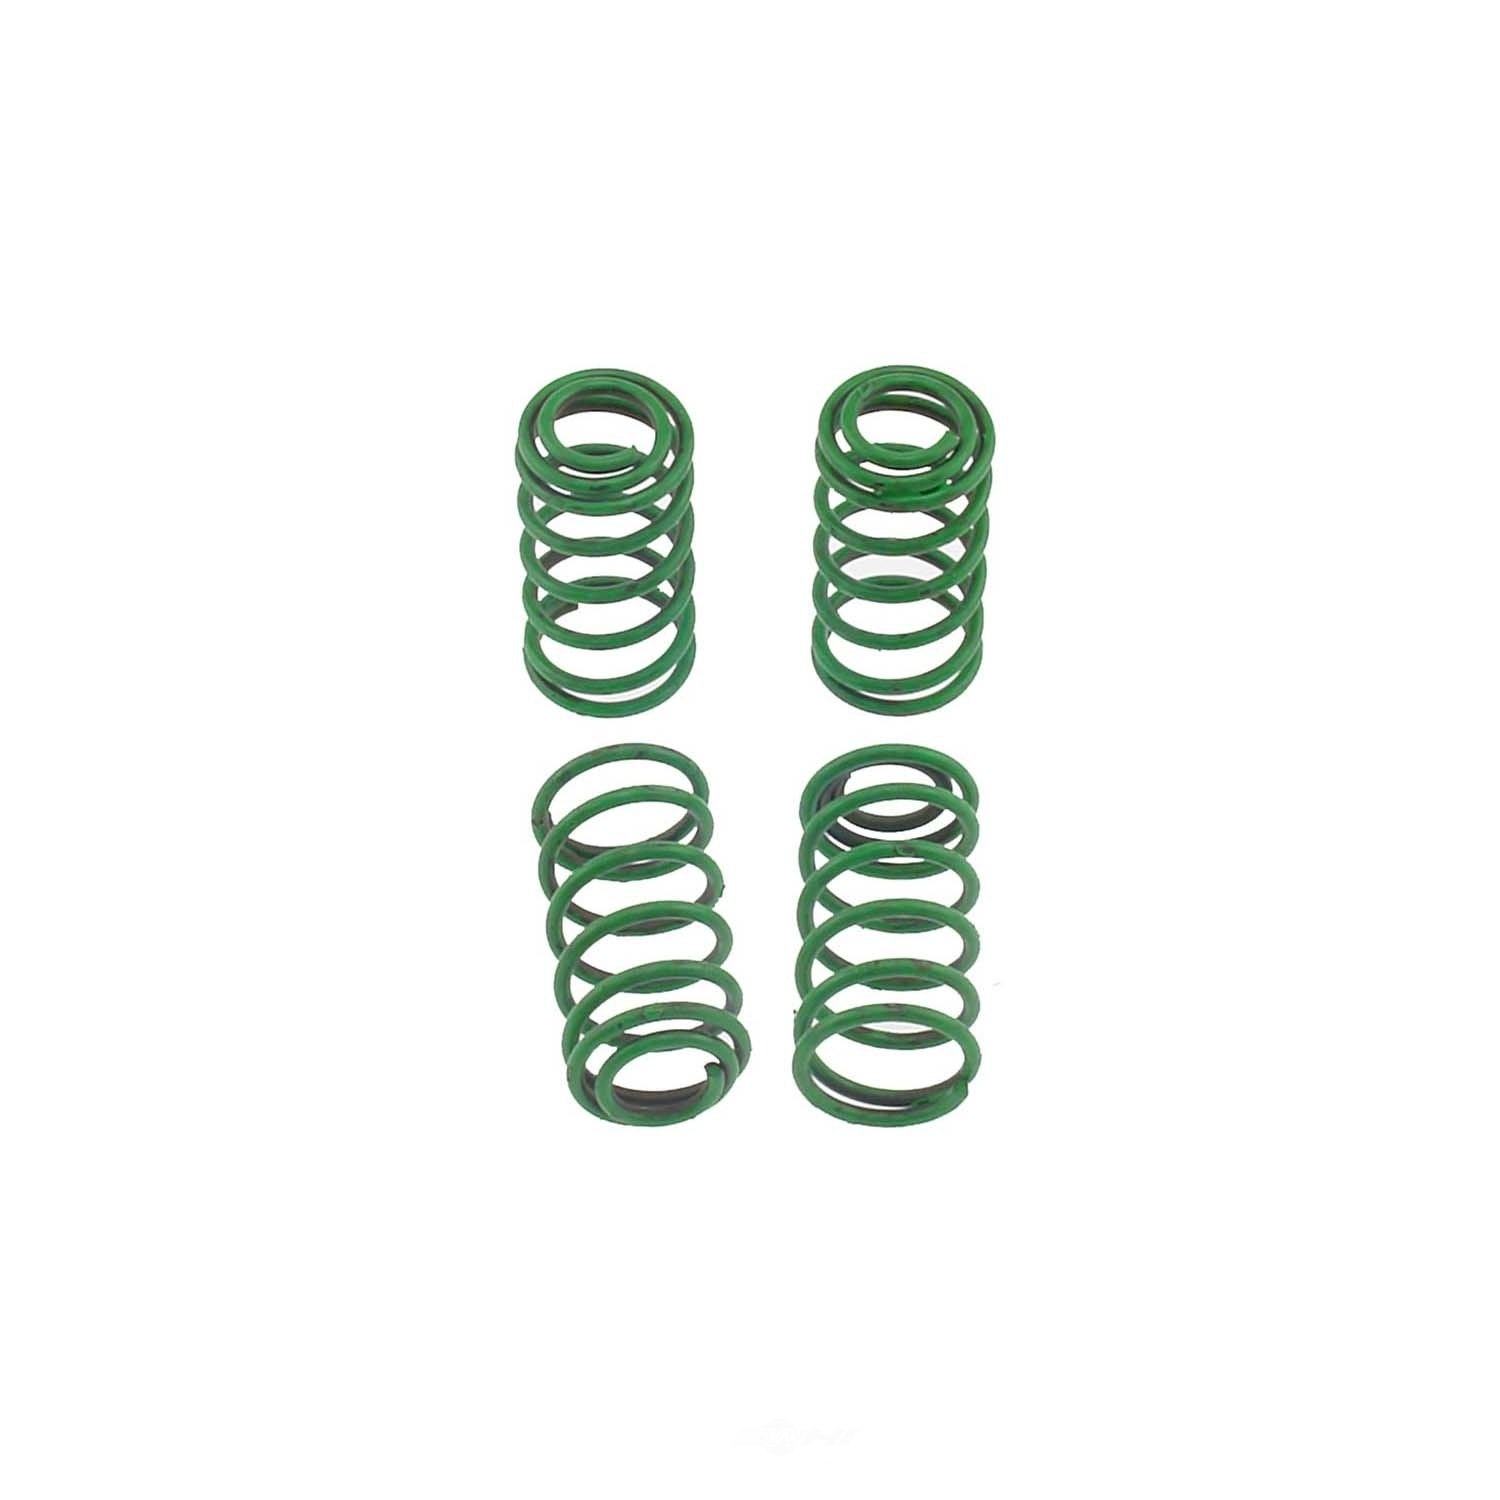 CARLSON QUALITY BRAKE PARTS - Brake Hold Down Spring - CRL H1153-2